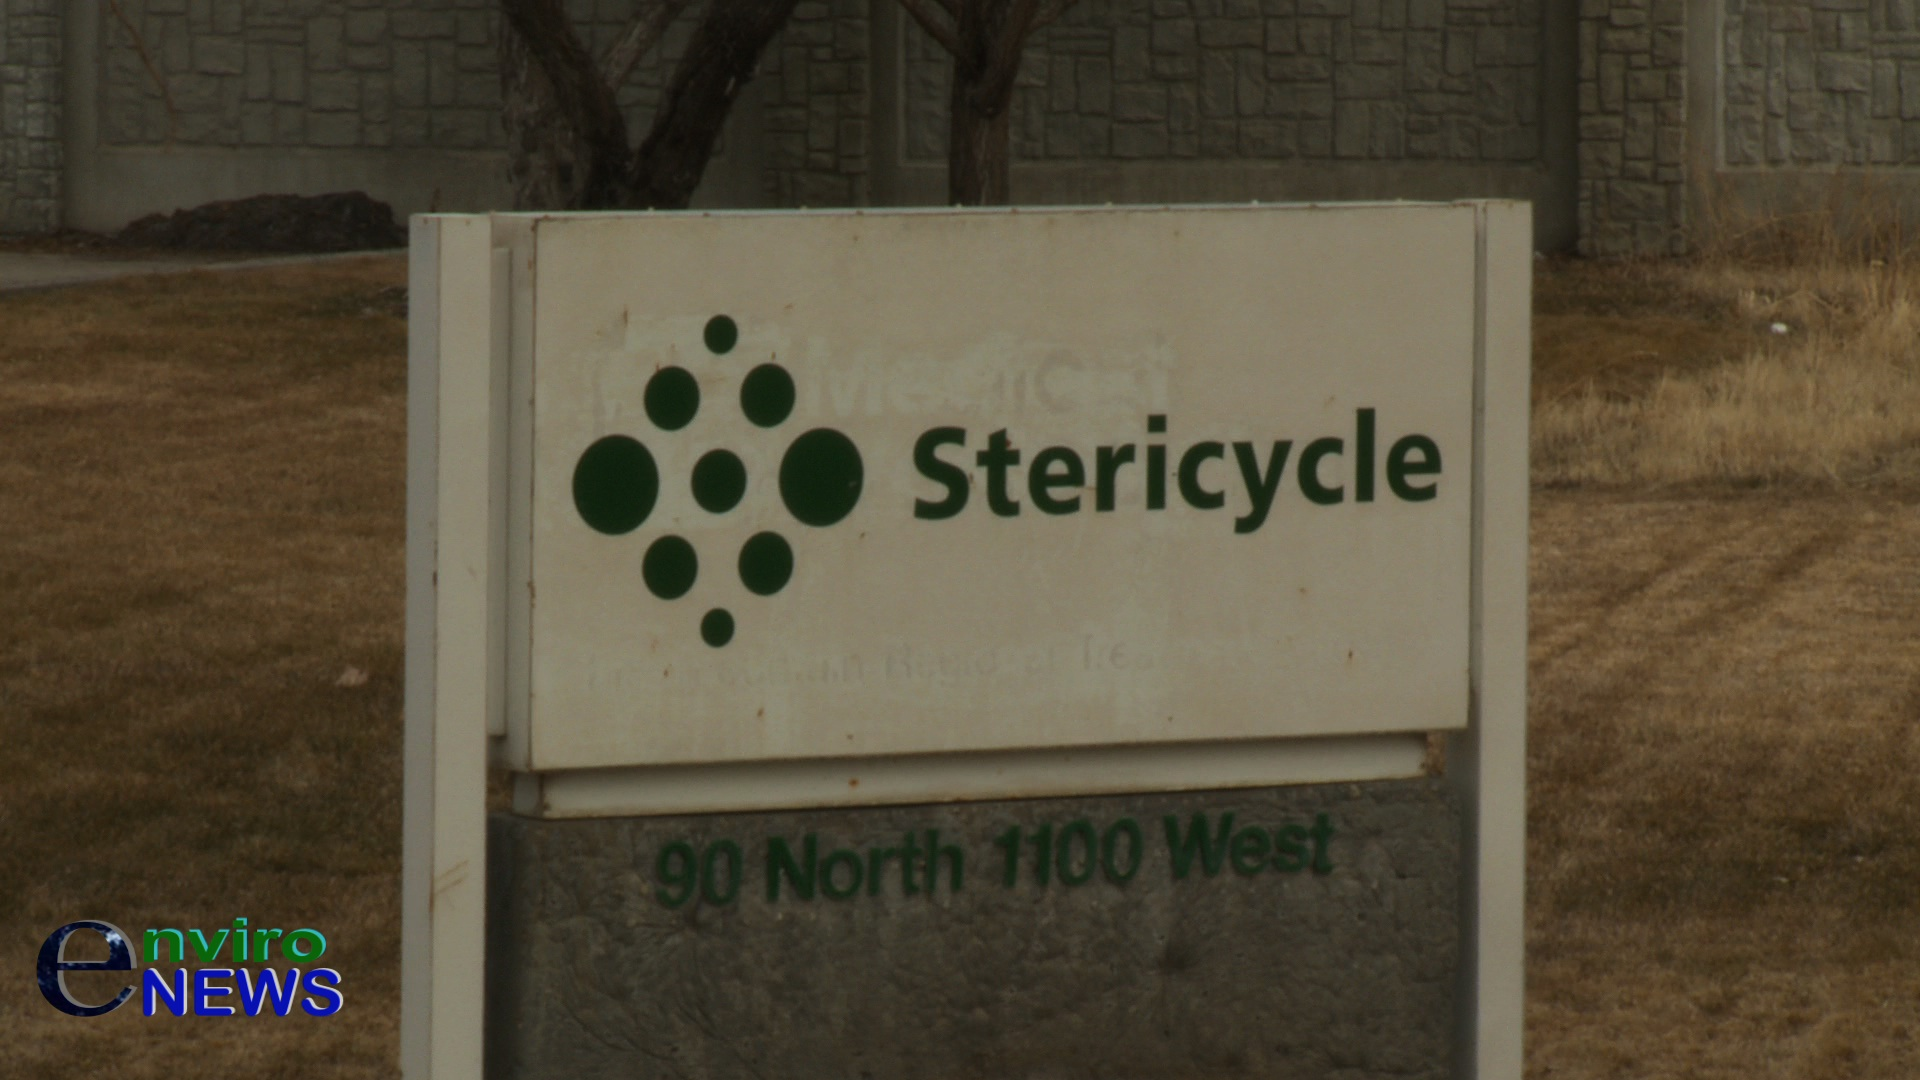 Stericycle Slapped with $72,000 Fine for Handling Hazardous Medical Waste at Non-Hazardous Facility